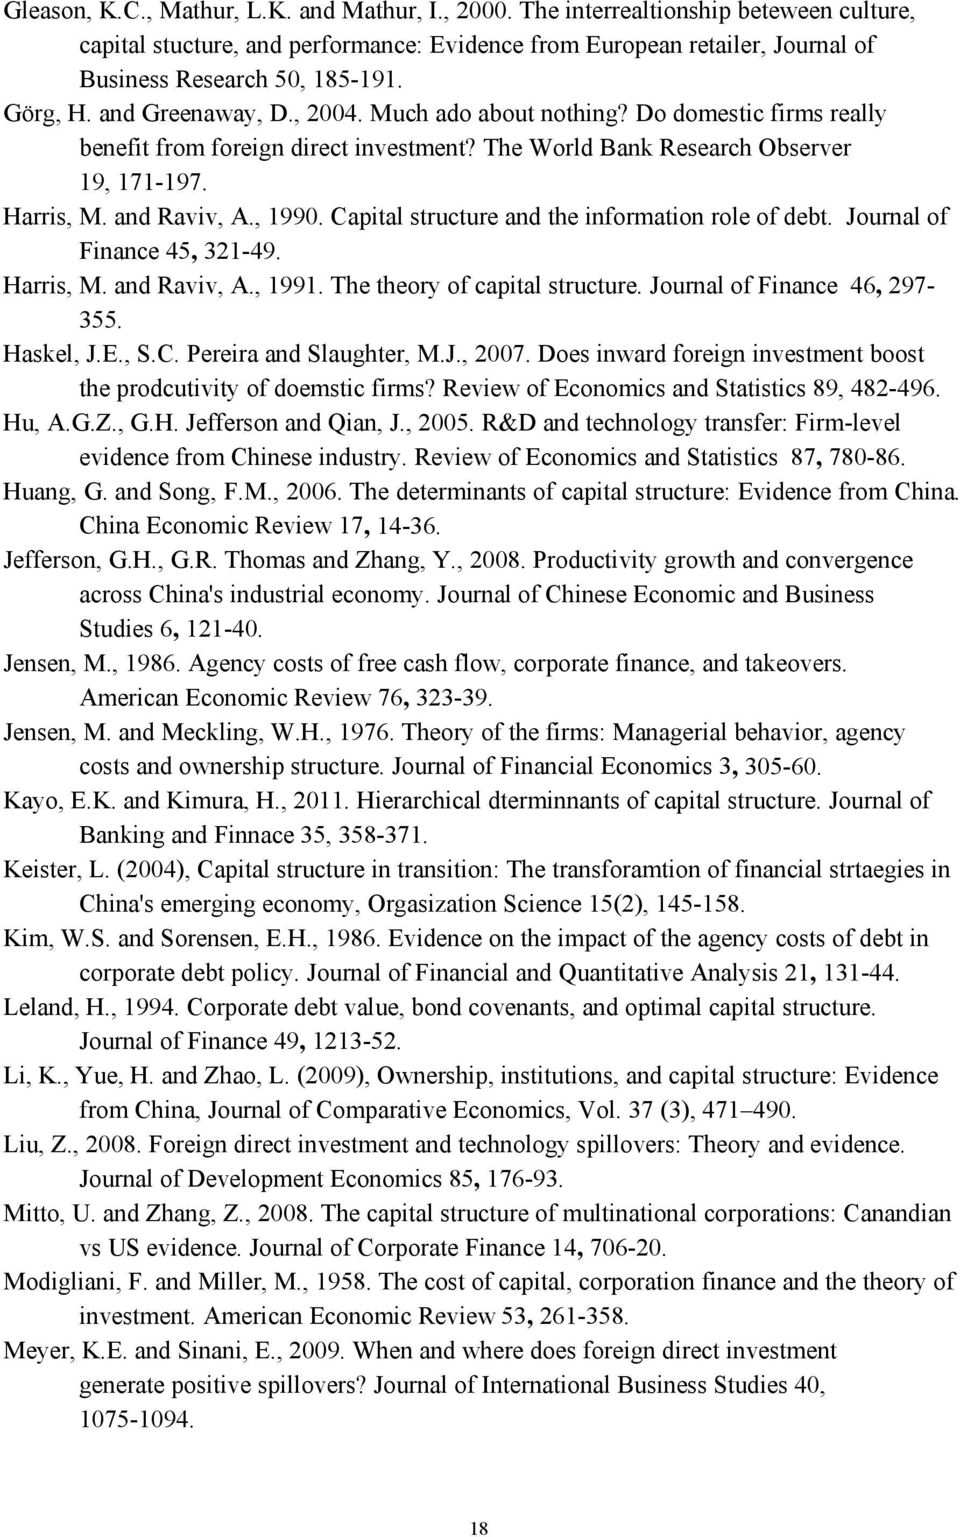 Capital structure and the information role of debt. Journal of Finance 45, 321-49. Harris, M. and Raviv, A., 1991. The theory of capital structure. Journal of Finance 46, 297-355. Haskel, J.E., S.C. Pereira and Slaughter, M.